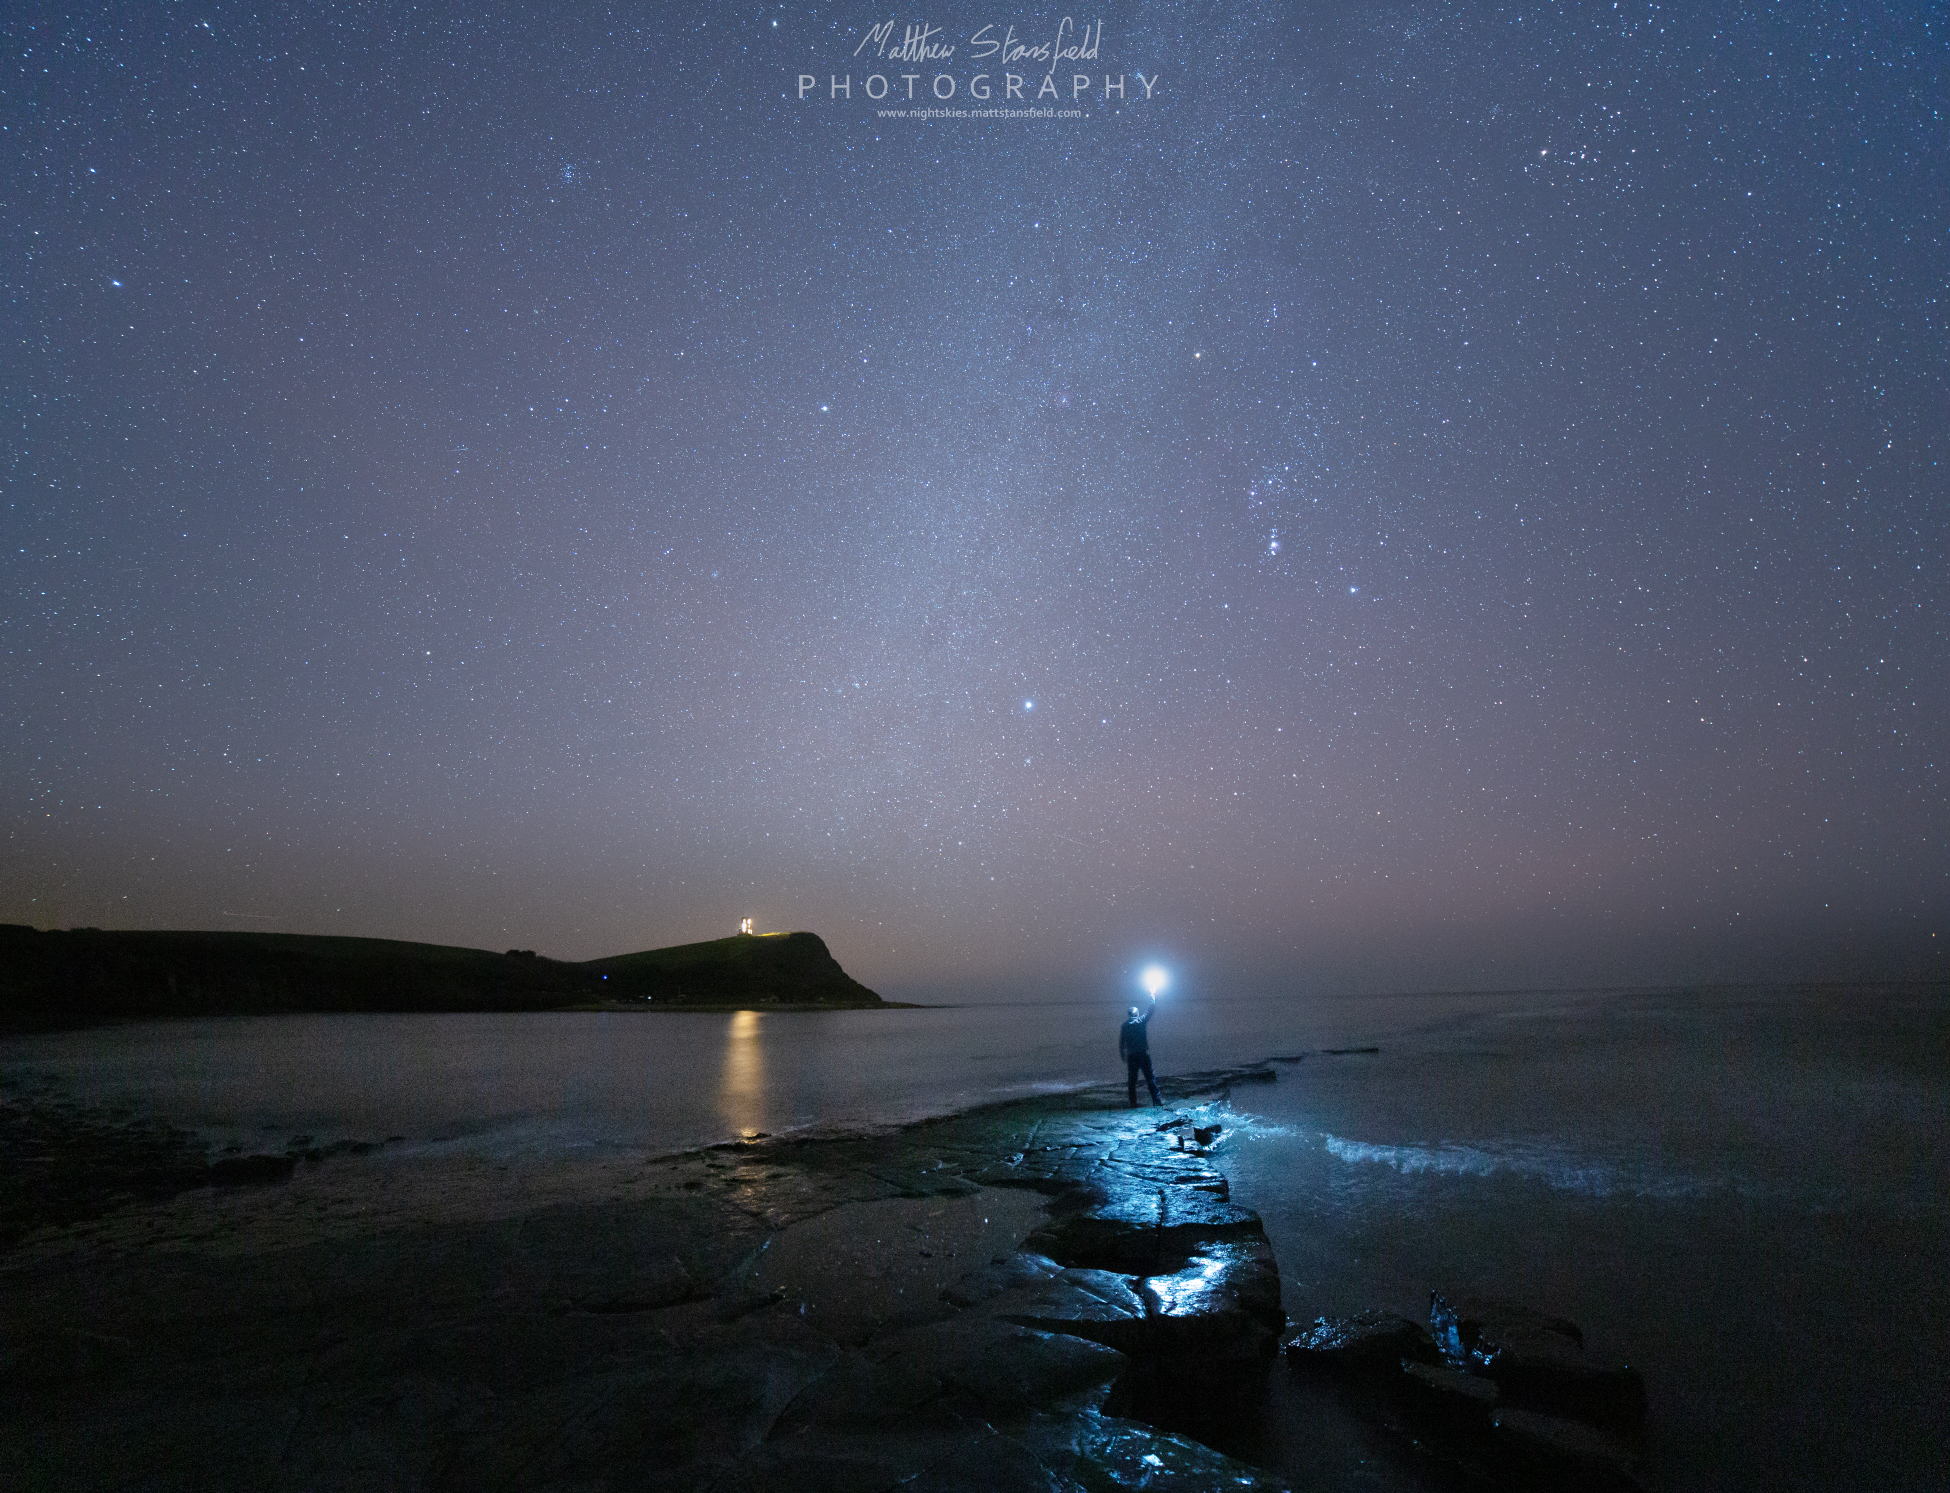 The much photographed ledge at Kimmeridge Bay- ISO 800, F2.8, 240 seconds for the sky. ISO 1600, F2.8, 320 second exposure.